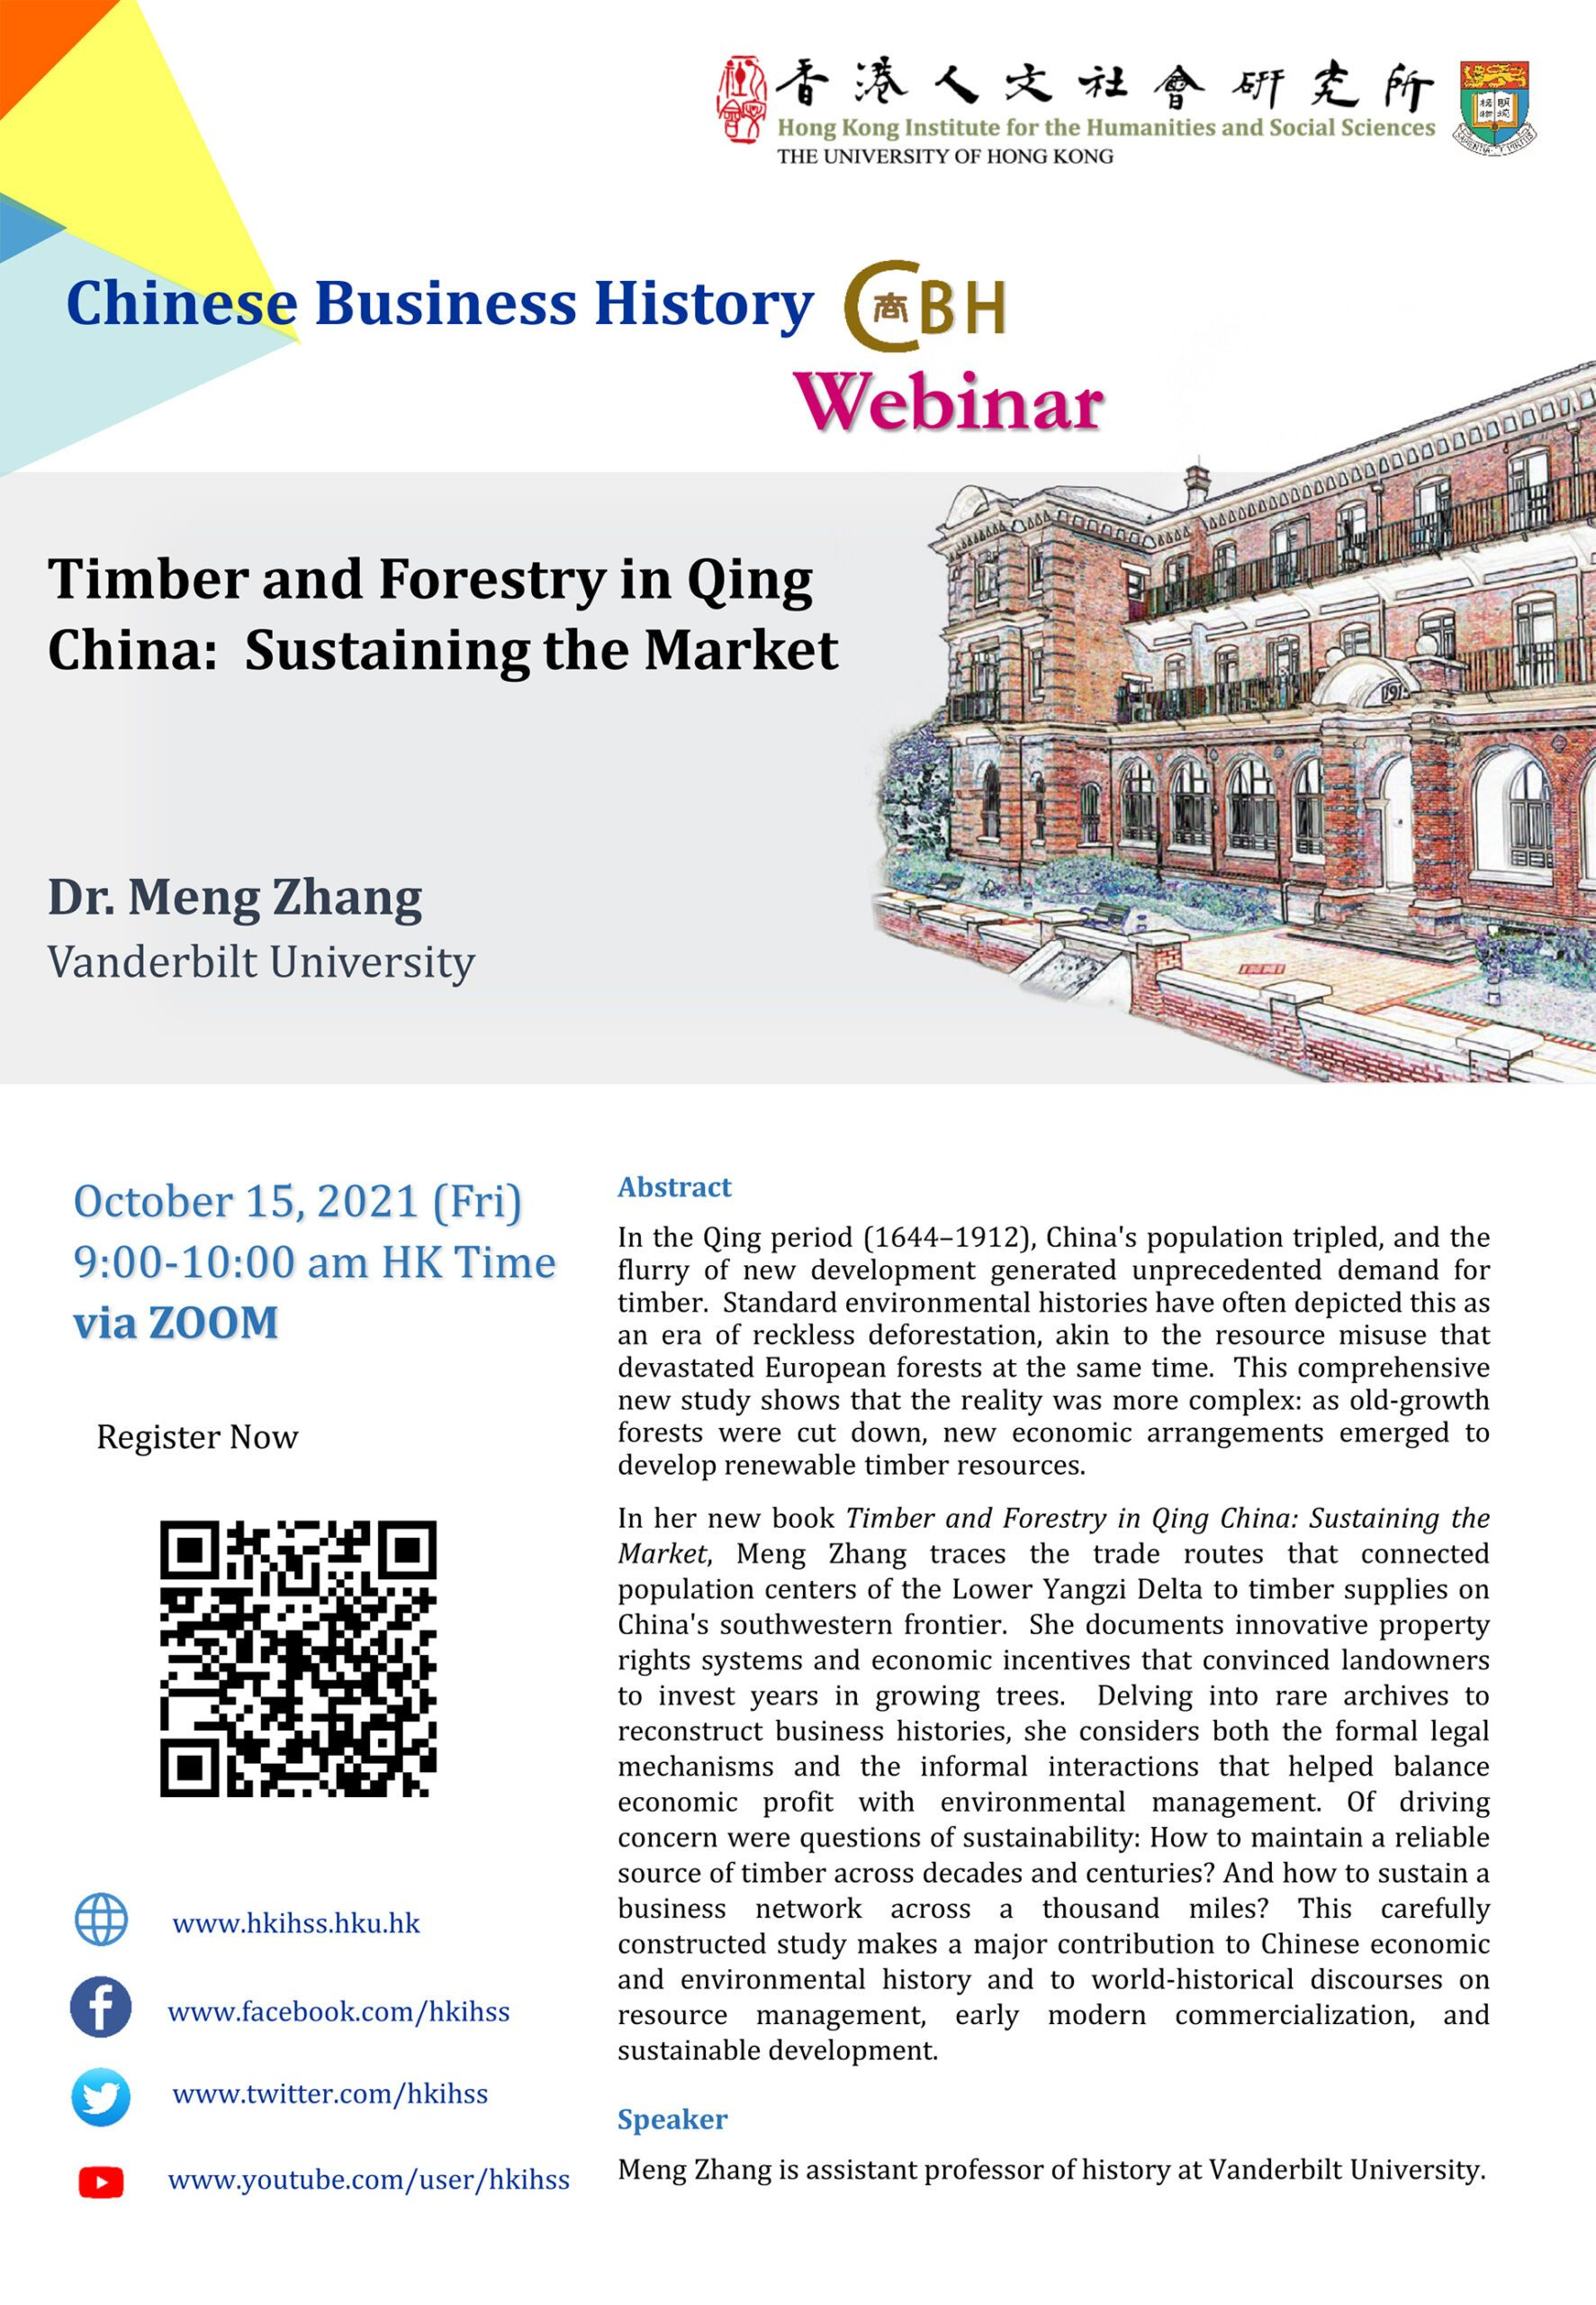 """Chinese Business History Webinar on """"Timber and Forestry in Qing China: Sustaining the Market"""" by Dr. Meng Zhang (October 15, 2021)"""